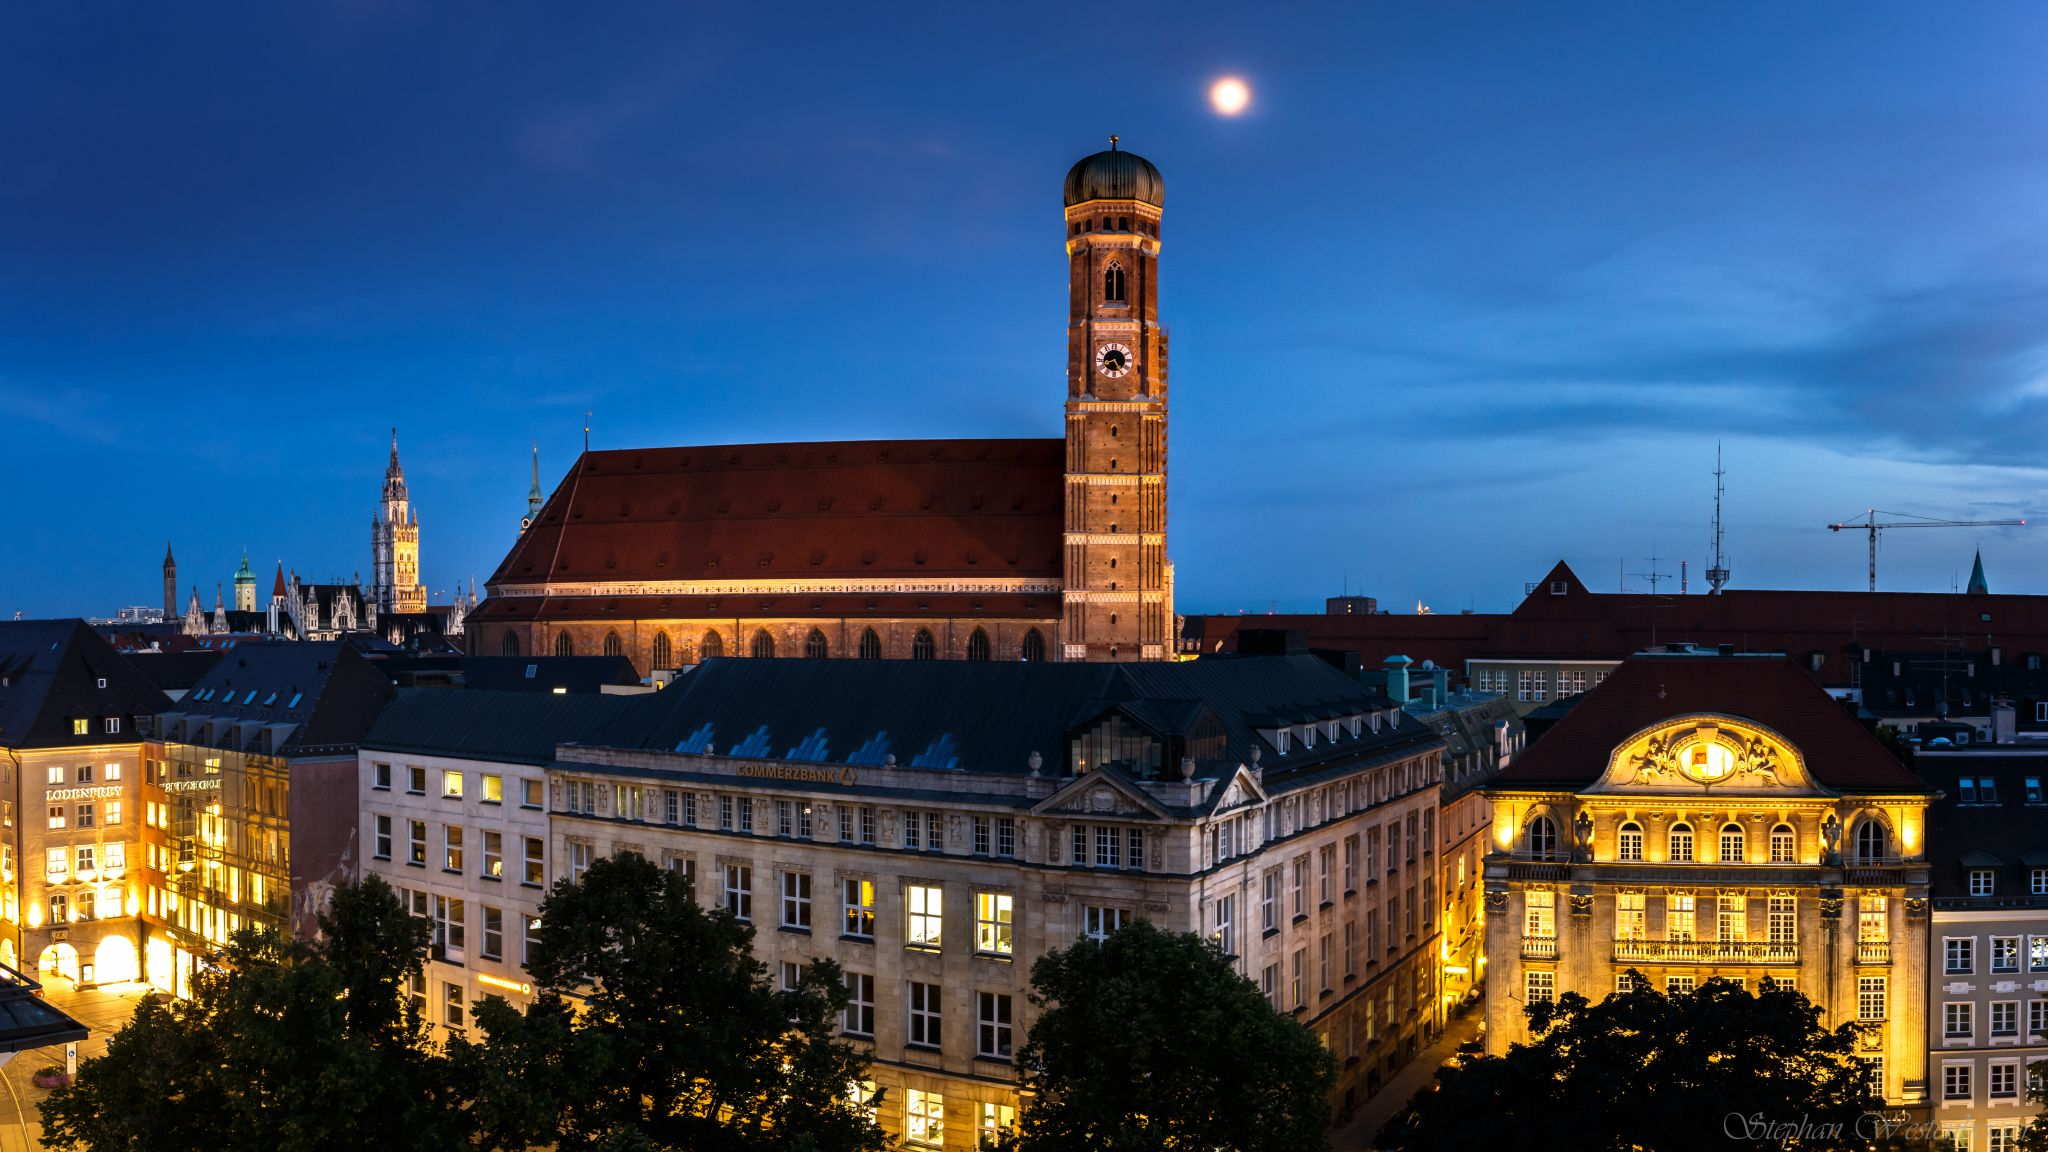 Frauenkirche (@ the rooftop Hotel Bayerischer Hof), Germany